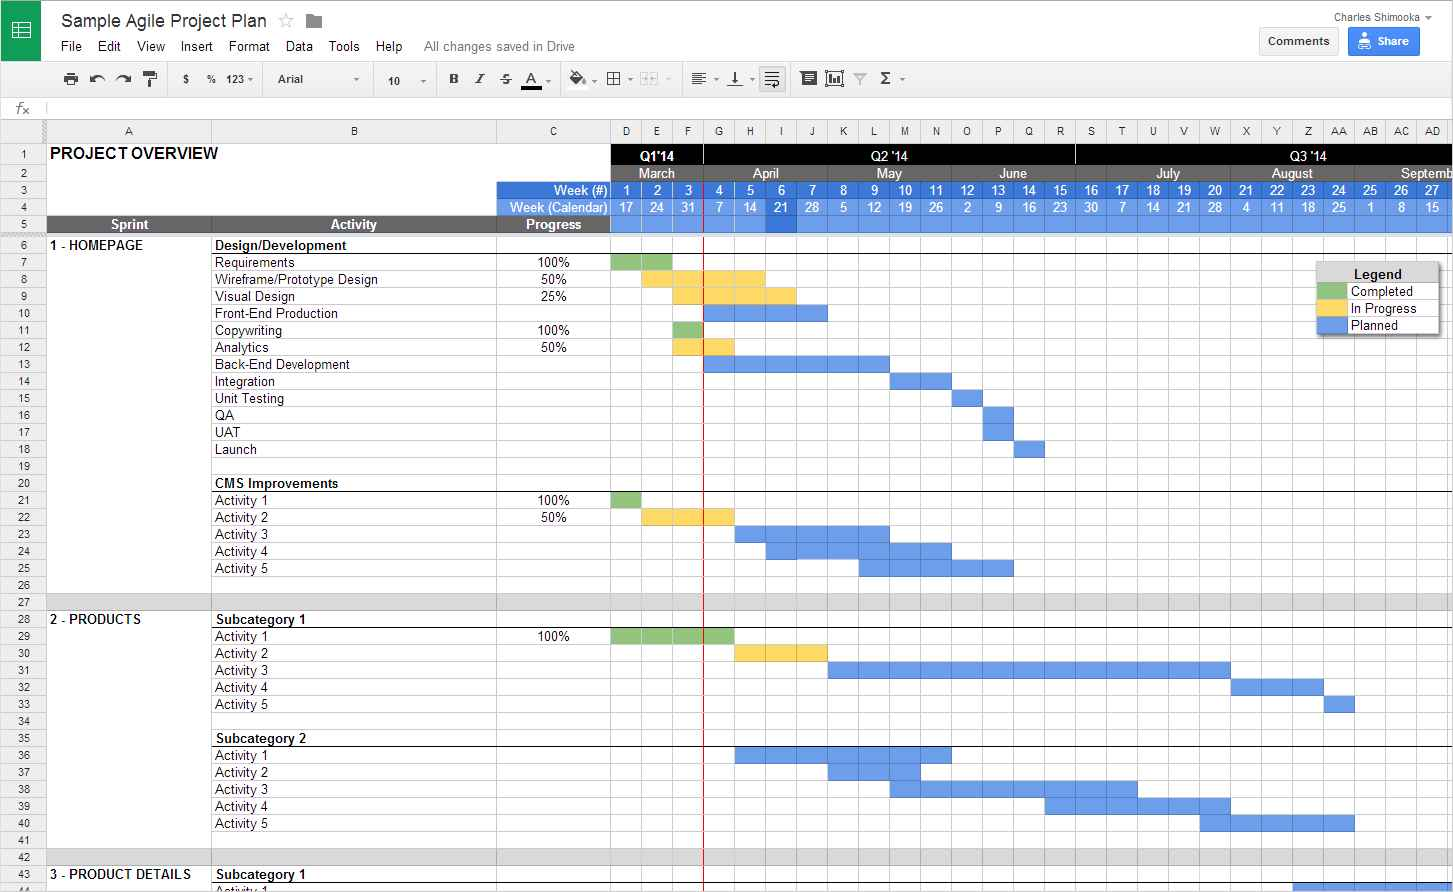 excel  How to apply a saved chart template to an existing